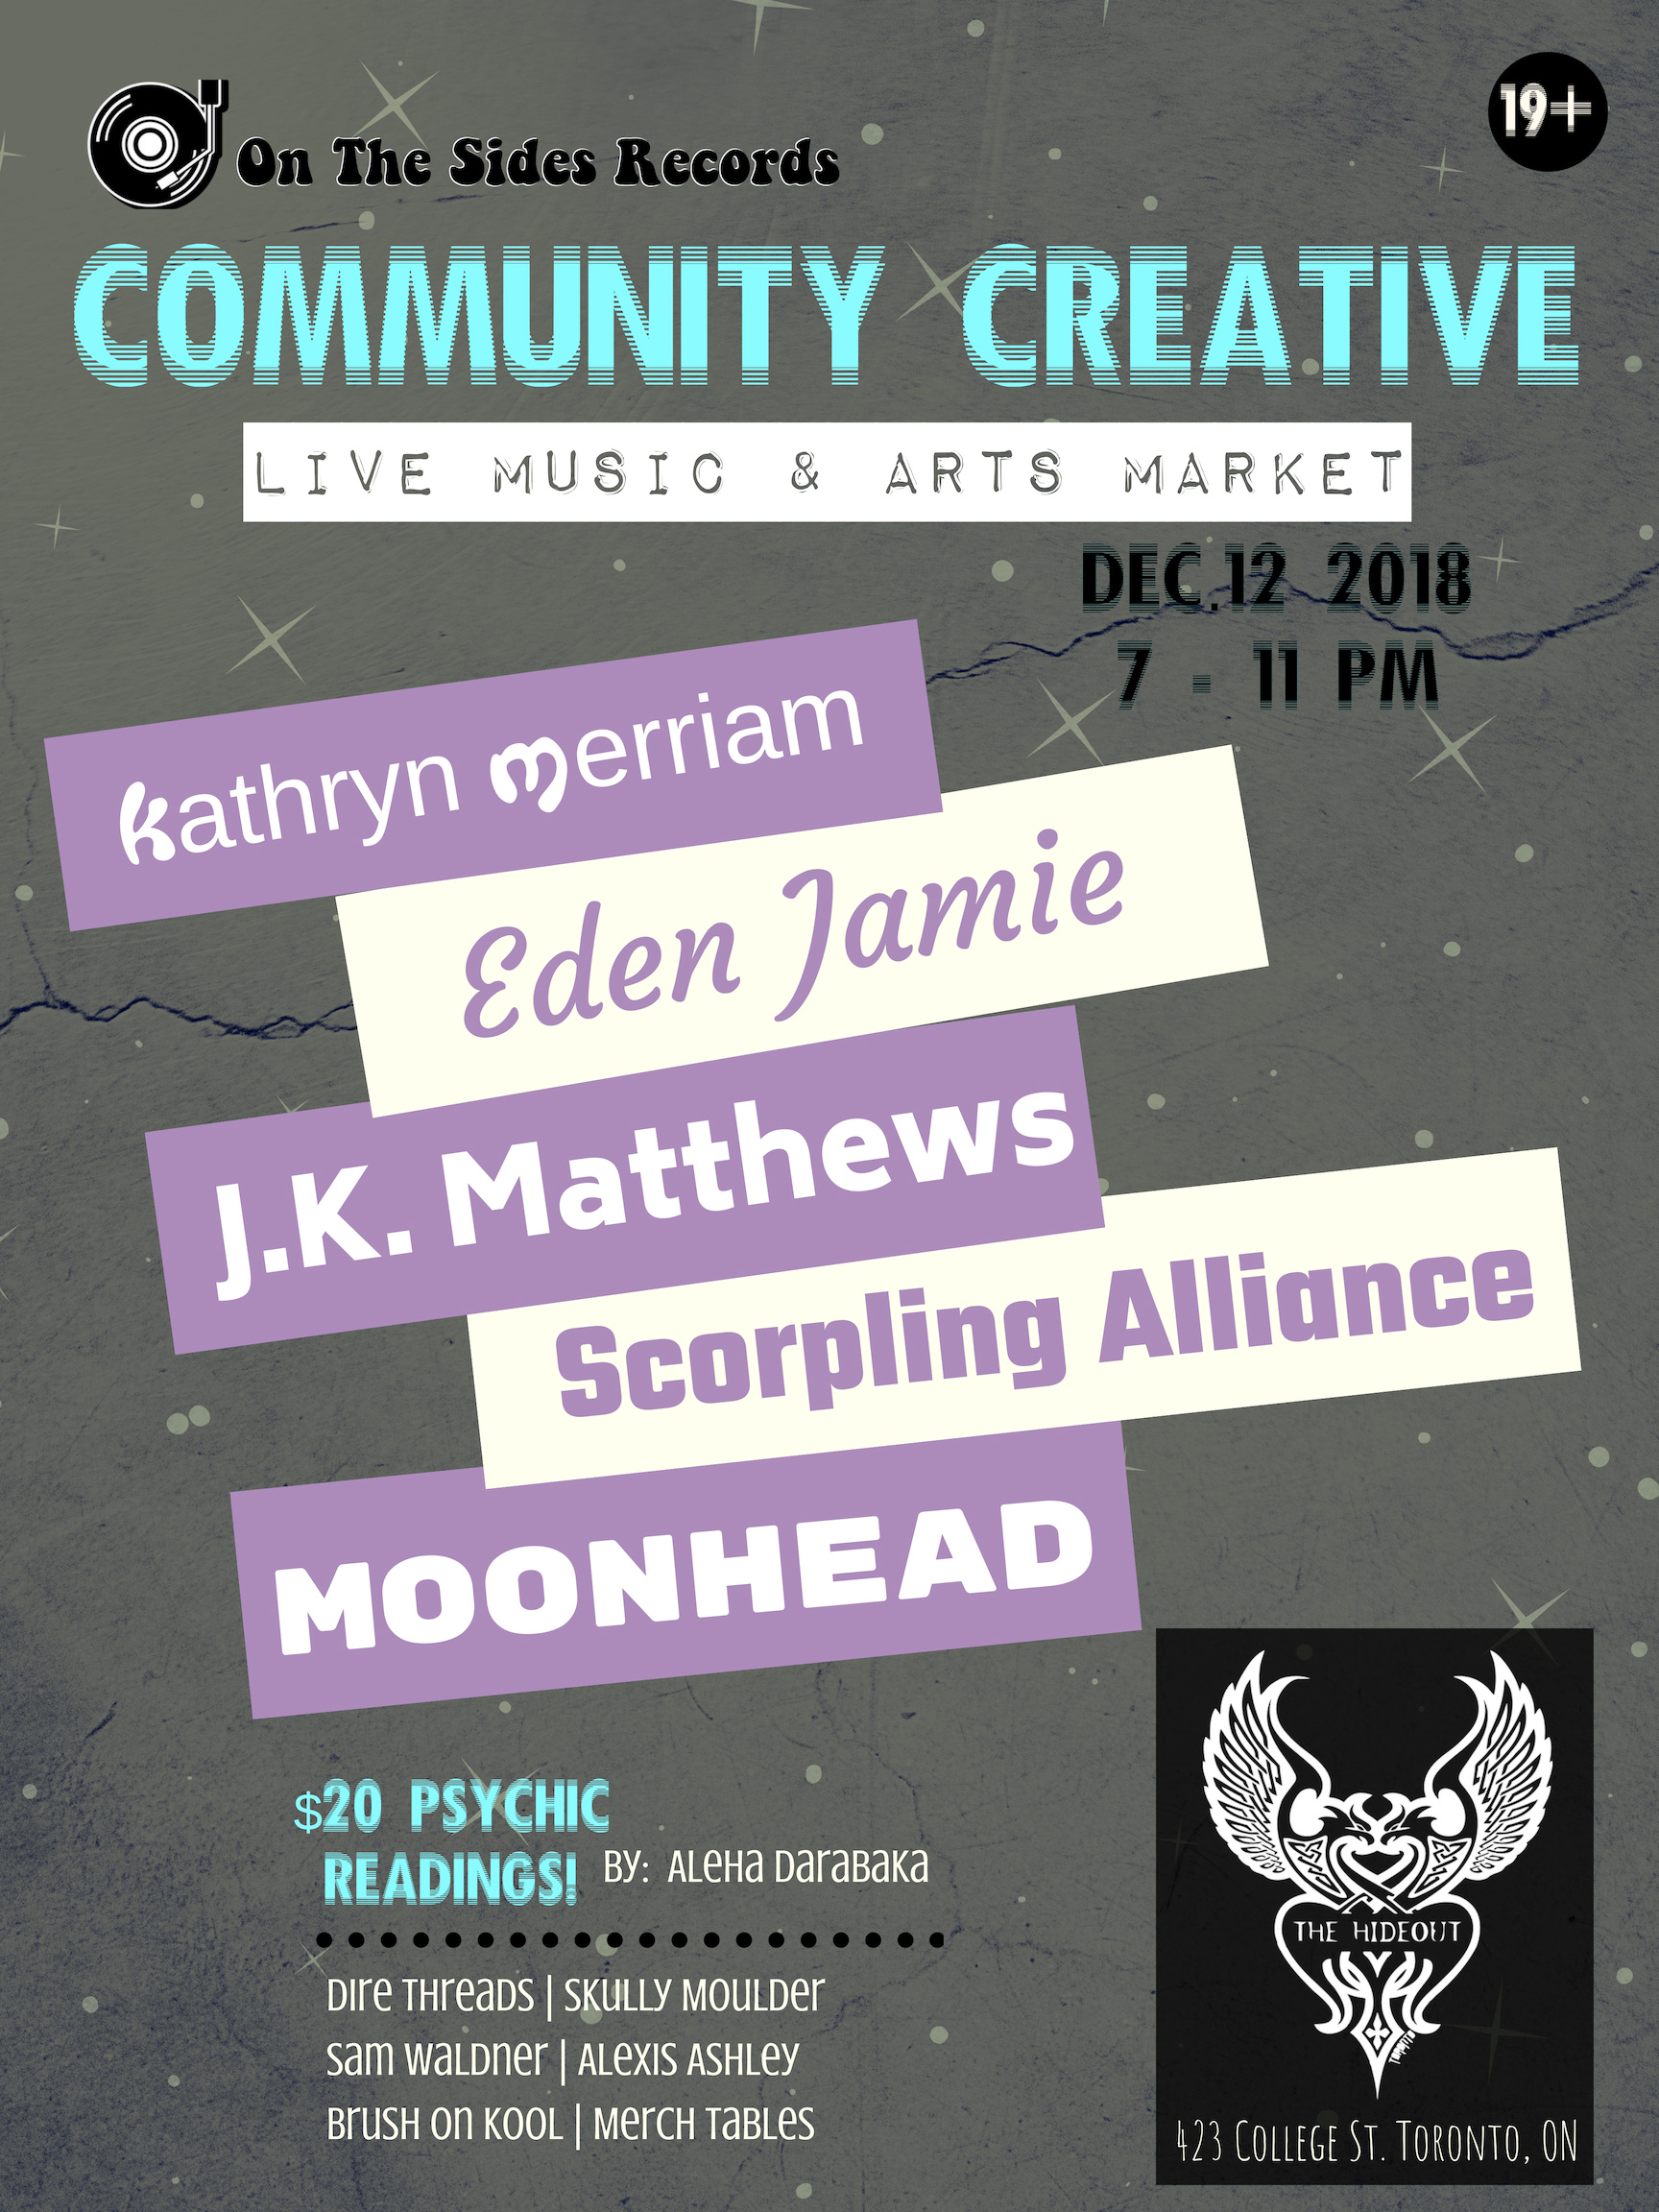 """On The Sides Records presents: Community Creative: Live Music & Arts Market.  Jump start the holidays:  Join the community for our 1st Live Music and Local Art showcase, Hosted at The Hideout, in Toronto.  We are proud to share an event that supports the inclusivity of ALL local artists! Community  Creative is a place for everyone to inspire and be inspired by  expressing their talents and supporting those of others.  Each month different performers and vendors will be put into the spotlight. We  encourage artists/performers of all kinds to submit their work for a  chance to be in the spotlight at future Community Creative's.  - THIS EVENT IS 19+  Our performers this month include:  Kathryn Merriam (@kathrynmerriam)   Eden Jamie (@edenjamiea) """"With  heart tearing, soul bearing lyrics, and tunes that transcend genre,  Eden Jamie fuses her honest poetry with melodies to match - like a hot  pot of alternative music for the soul.""""  J.K. Matthews (@j.k.matthews)  """"J.K. Matthews mixes elements of Alternative, Blues and RnB to form unique soundscapes for story driven songs.""""  Scorpling Alliance (@scorplingalliance)  """"The  female duo dubs their music as, Theatrical Space Rock. You've been  blasted by a laser beam into a collective of past, present and  futuristic sound waves reminiscent of times spent bathing in star dust!""""  Moonhead (@moonheadtheband)  """"An original funk, pop band from Toronto.""""   -  Our vendors this month are:  Aleha Darabaka  - Offering readings """"Multi-disciplinary  Belly Dancer, performer, healer and oracle reader based out of Toronto.  Aleha embodies Goddess energy through her love of performance,  modelling, oracle reading, colour and sound therapy. She has studied  varied styles of Belly Dancing that she incorporates by fusing them all  into her own unique style. She's always challenging her creativity by  inventing new, original characters and costumes that she puts together  to give her audience a high theatrical and visual experience.""""  Skully Moul"""